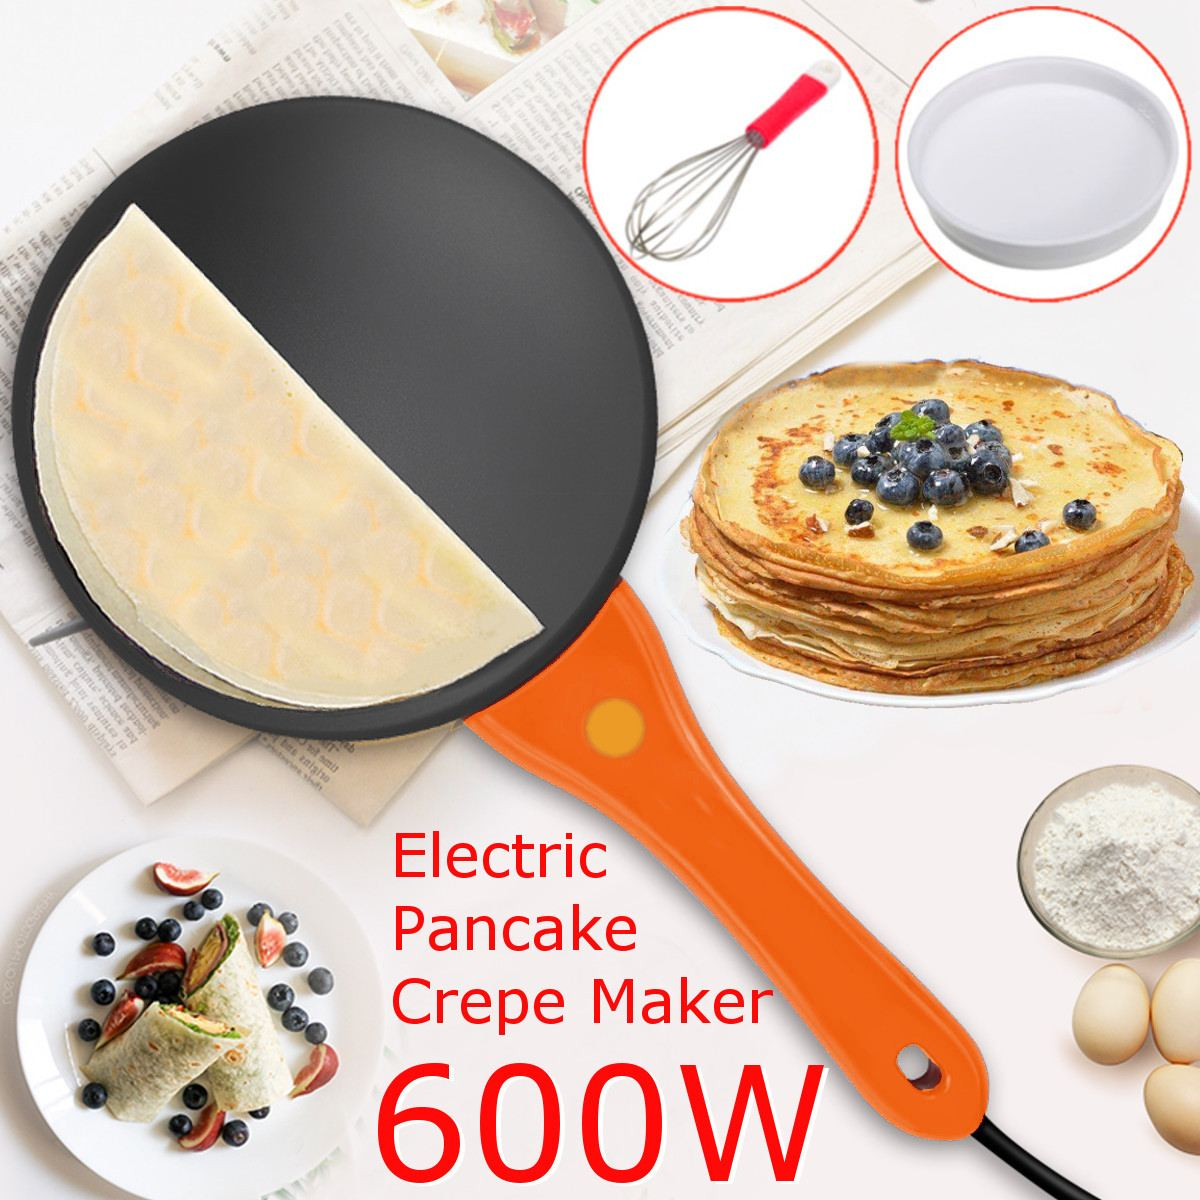 220V Non Stick Electric Crepe Pizza Maker Pancake Machine Kitchen Cookare Griddle Baking Pan Cake Machine Cooking Tools Crepe